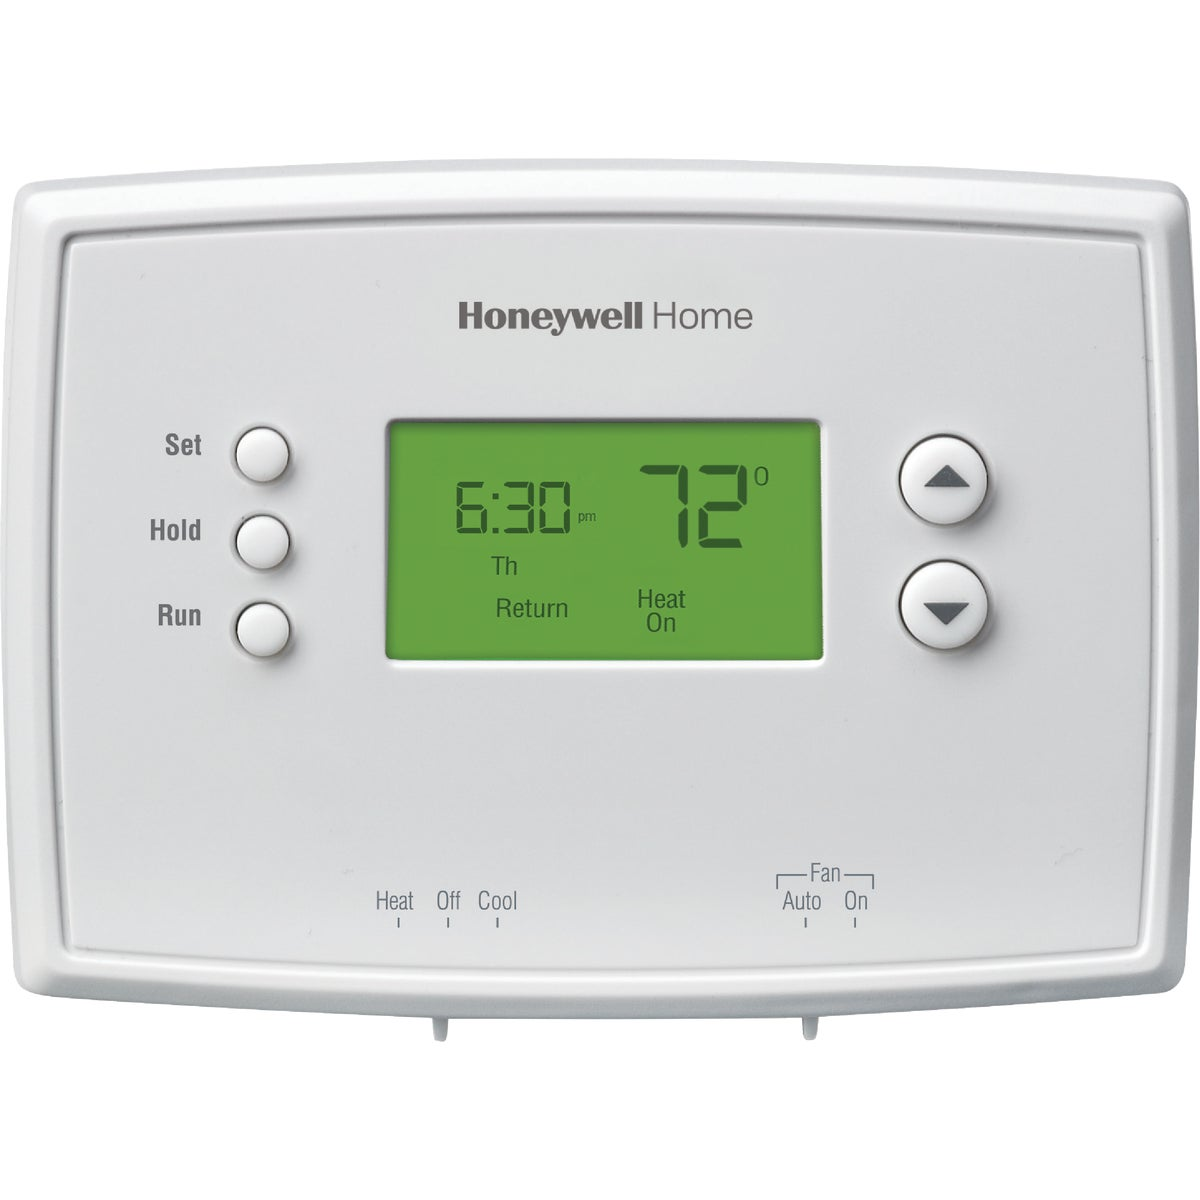 5-2 PROGRAM THERMOSTAT